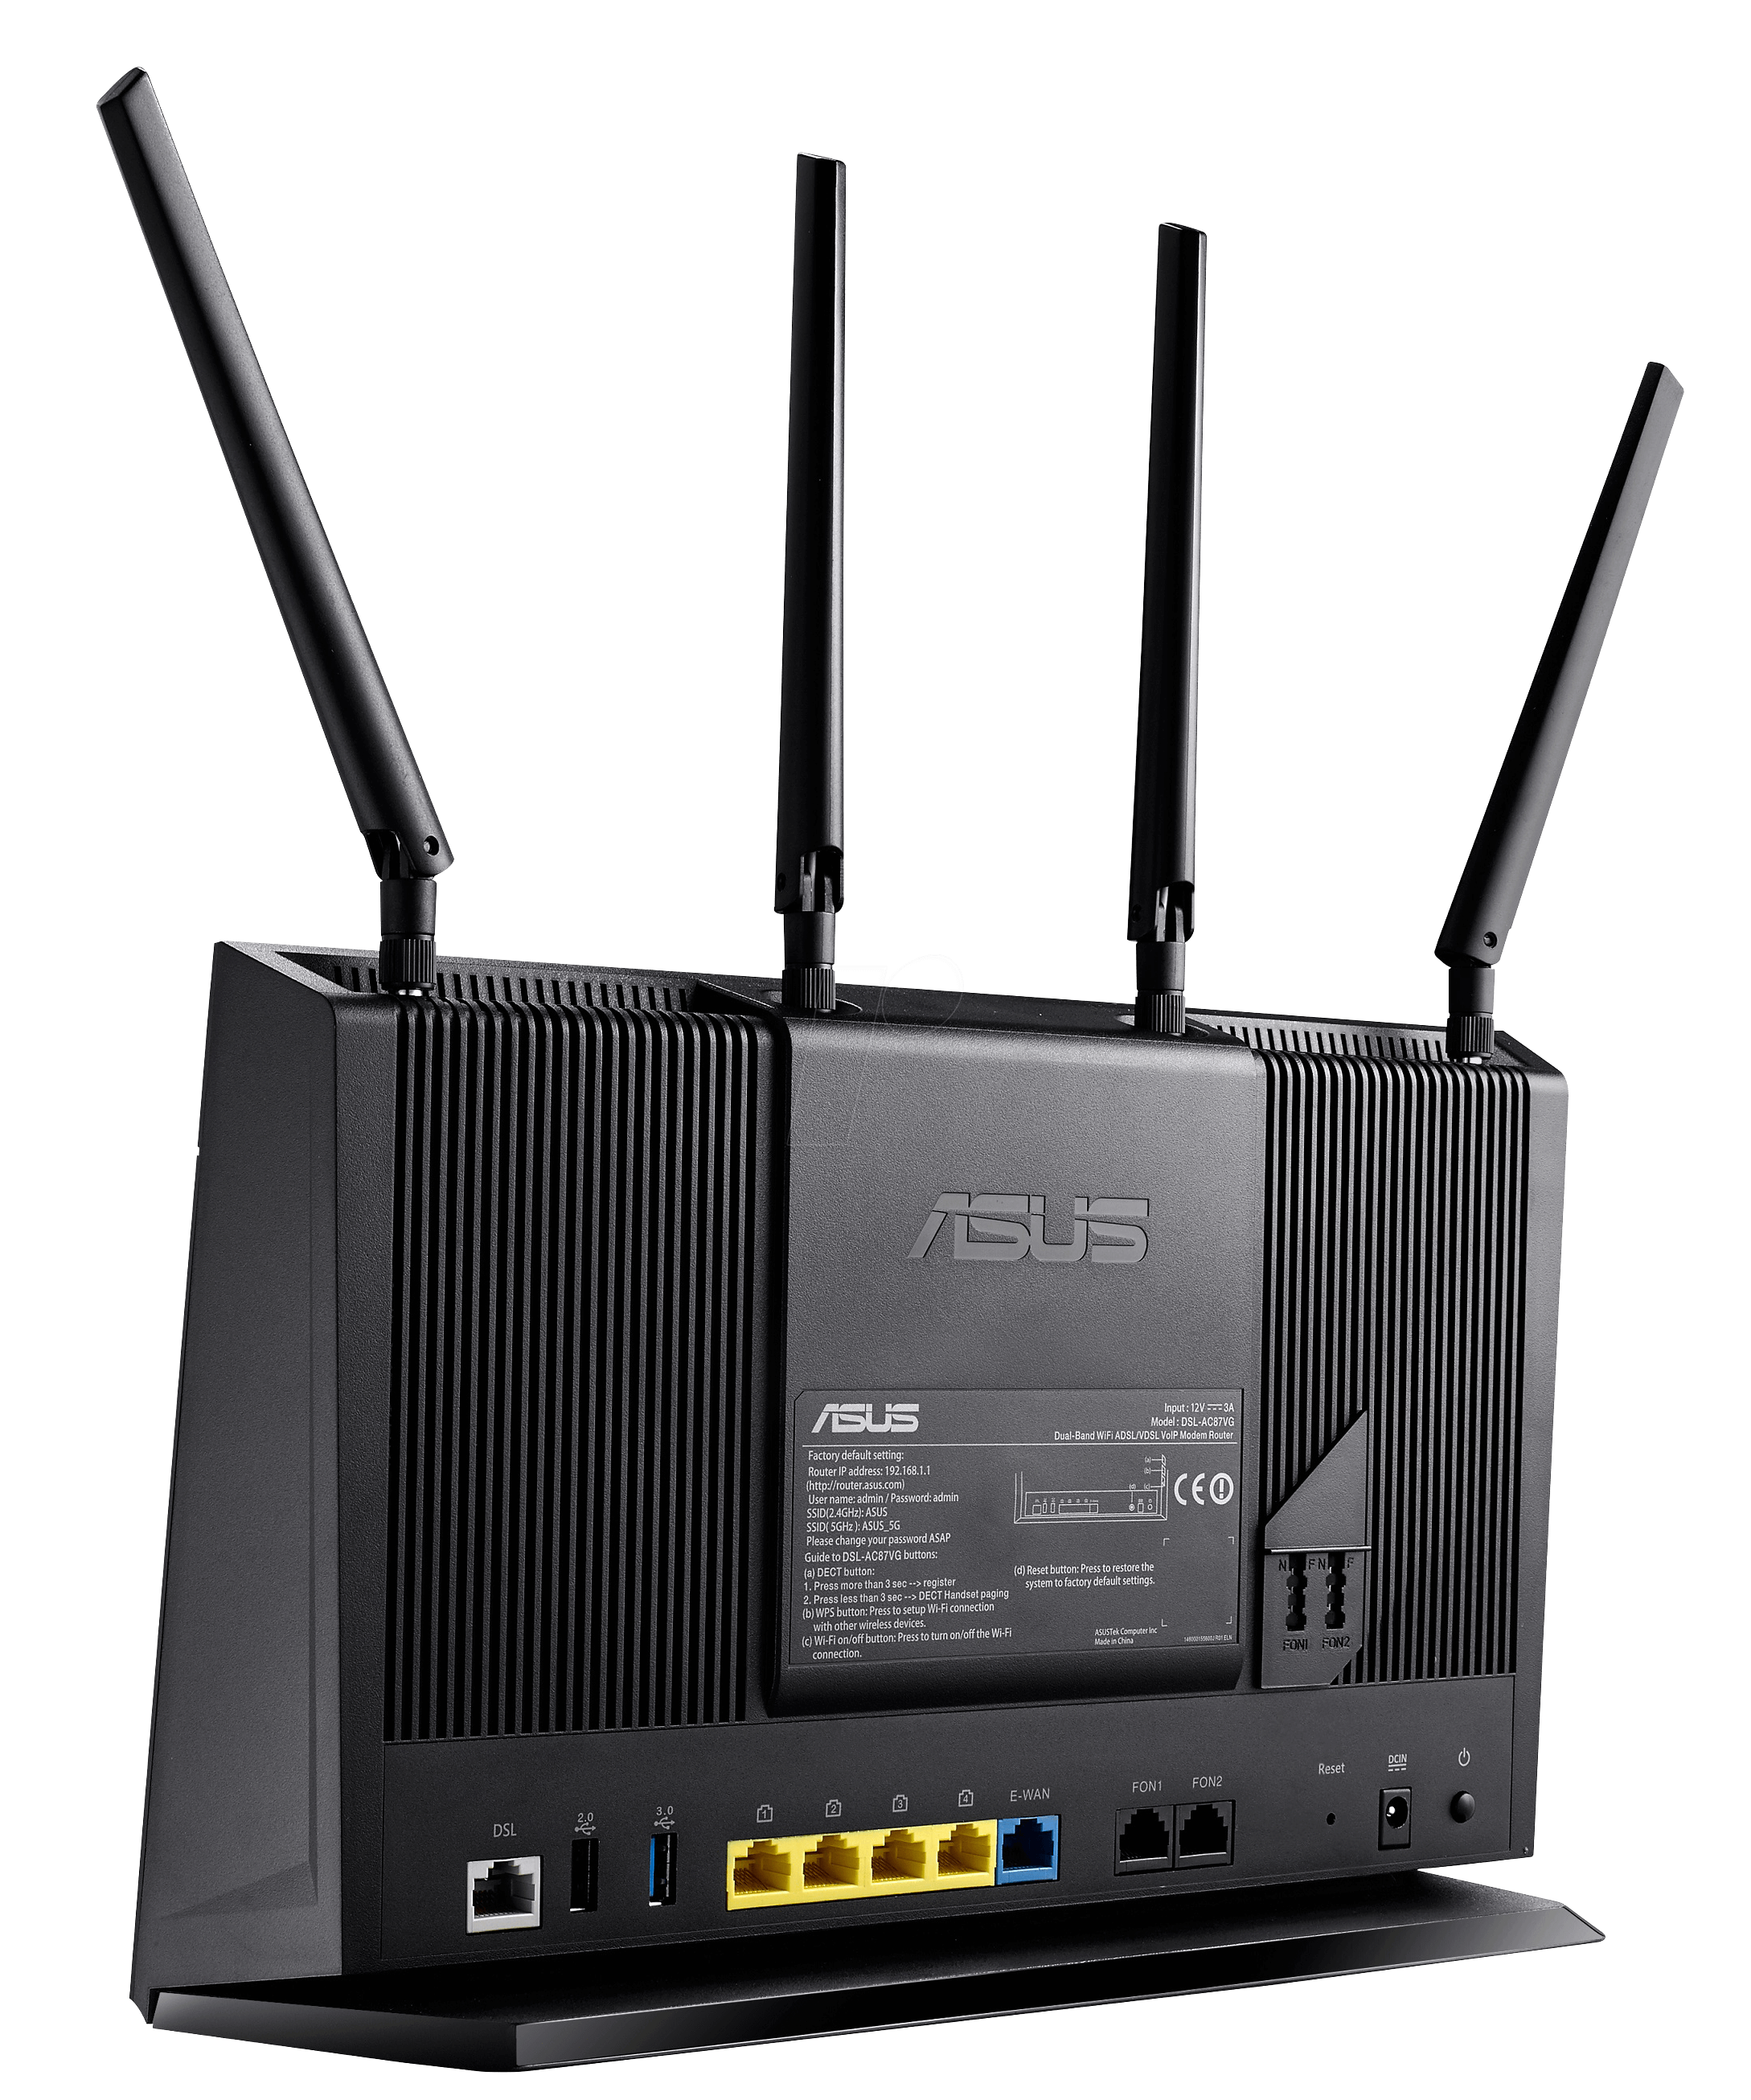 asus dsl ac87vg ac1900 adsl vdsl wifi router at reichelt elektronik. Black Bedroom Furniture Sets. Home Design Ideas